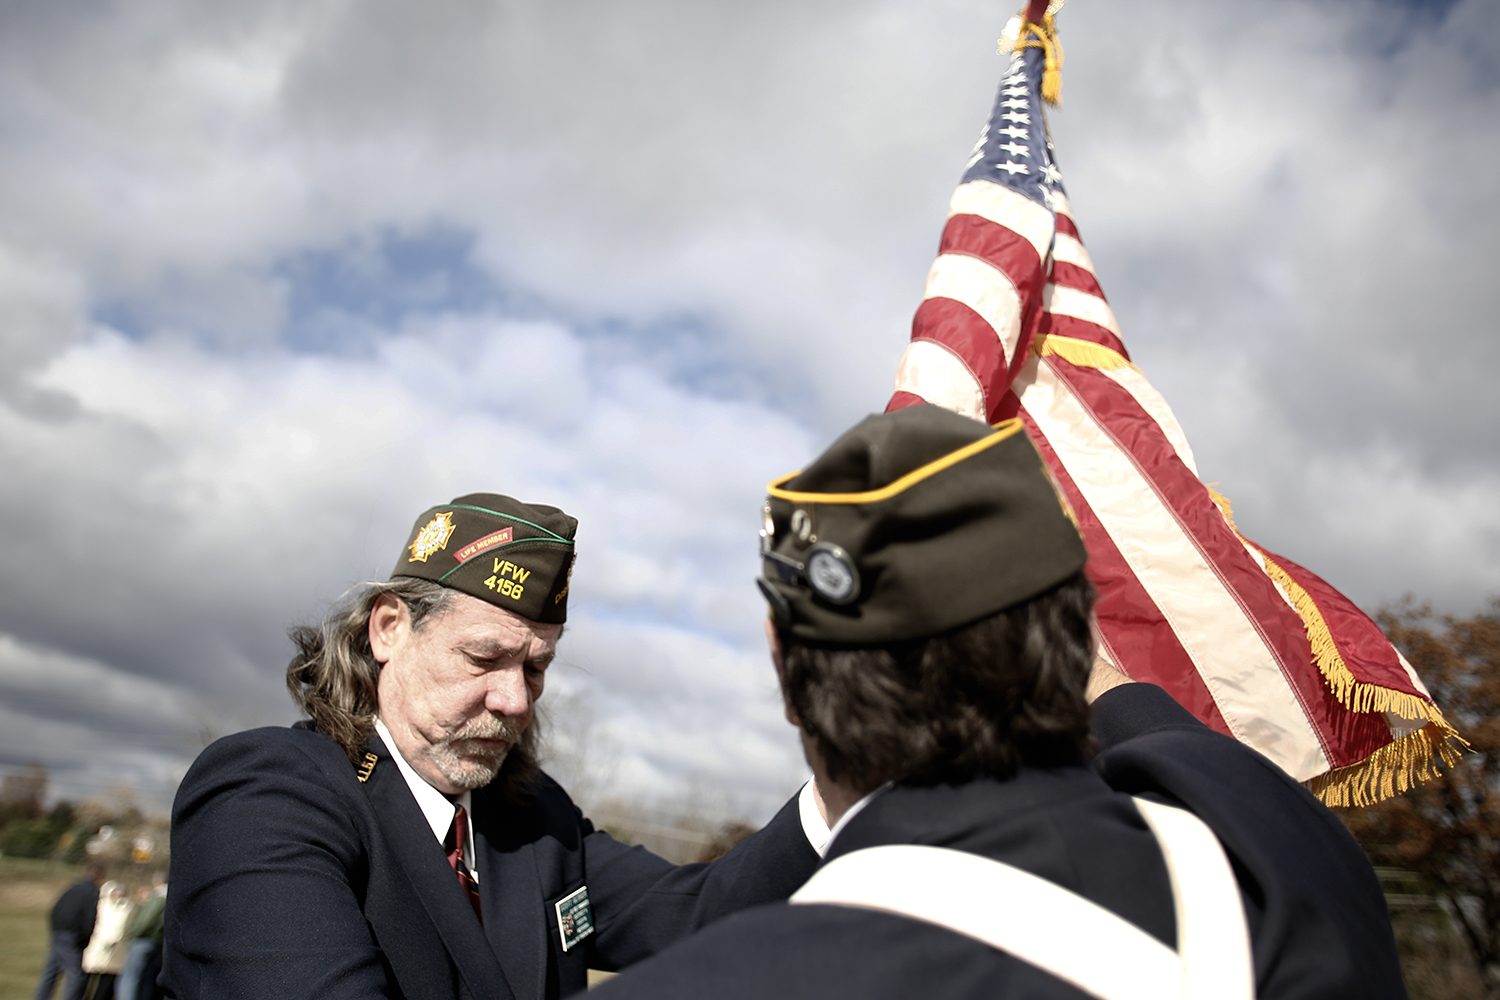 Scott Gloger, left, from Brighton and Darrell Poole from Wixom unfurl the flag to prepare for the Veterans' Day ceremony on Sunday, Nov. 10, 2013 at the White Lake Cemetery in White Lake.